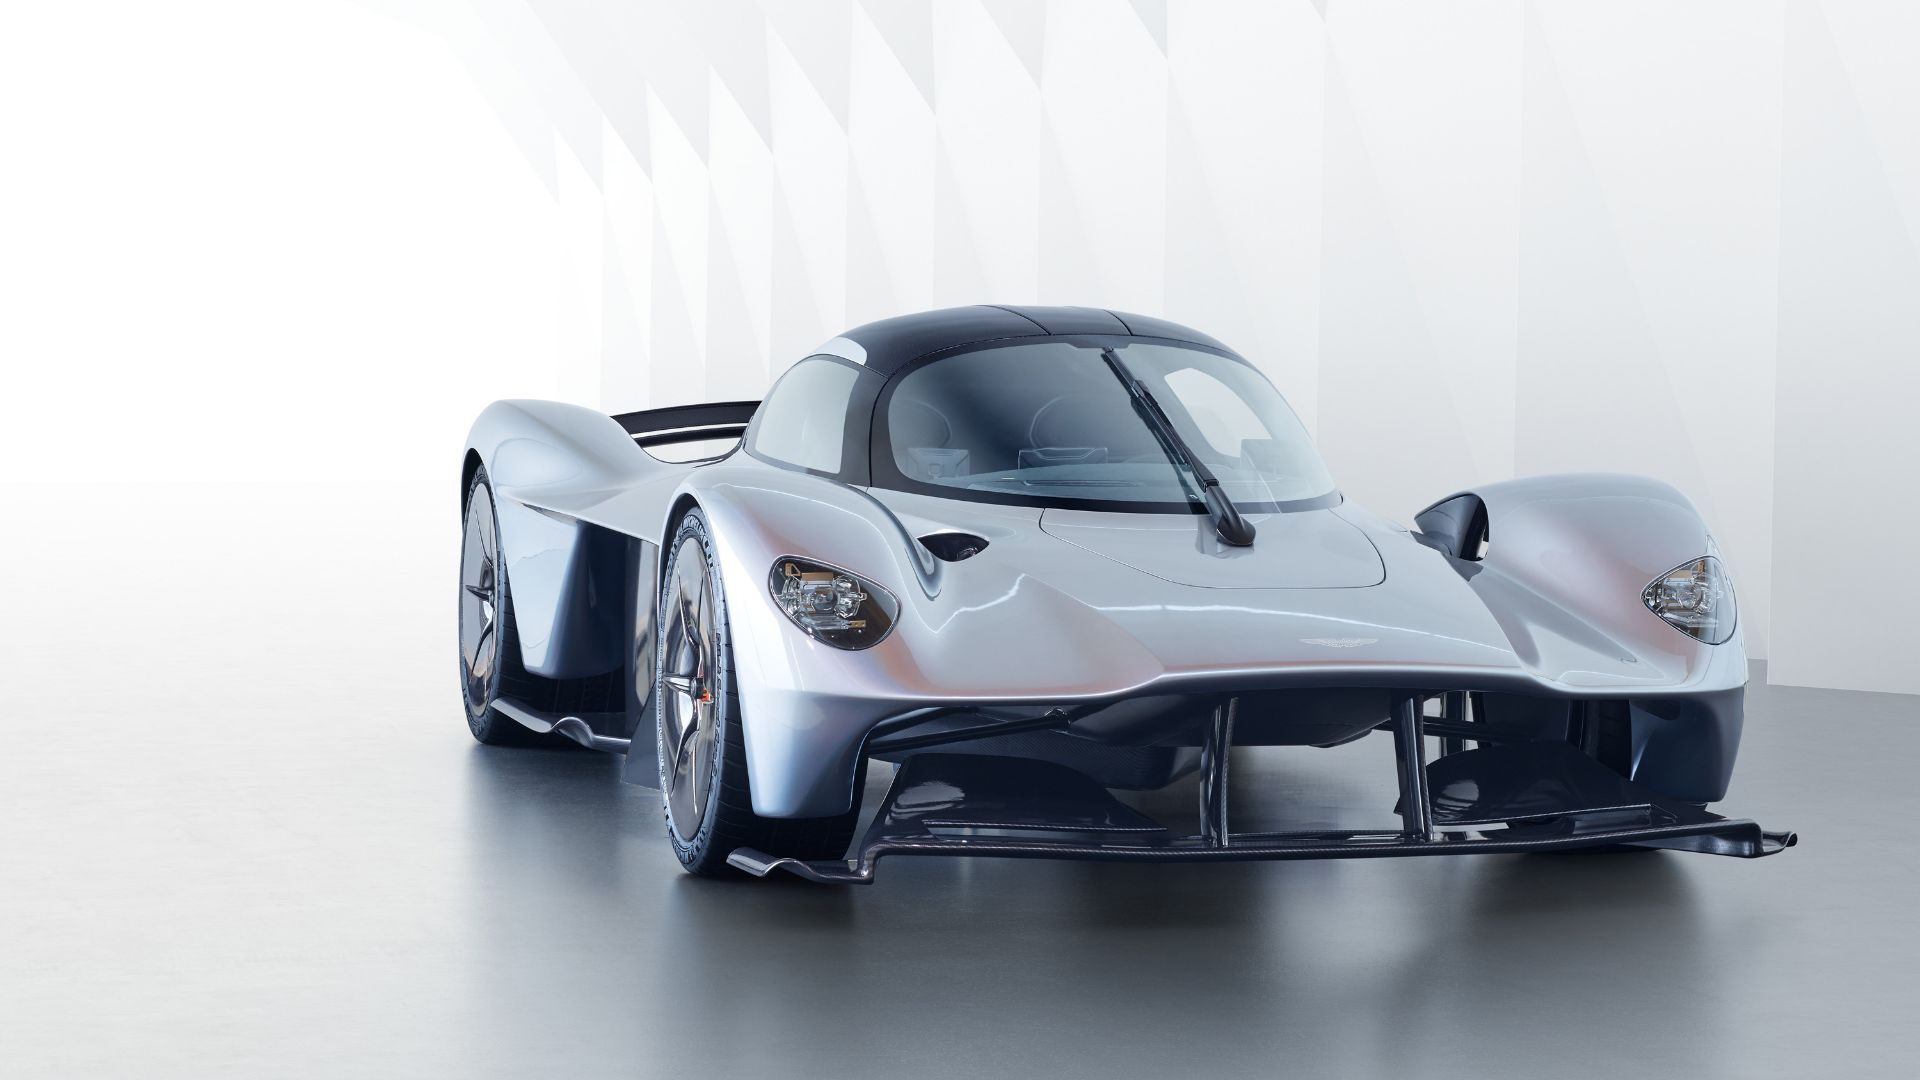 aston martin reveals spec of valkyrie's incredible v12 engine